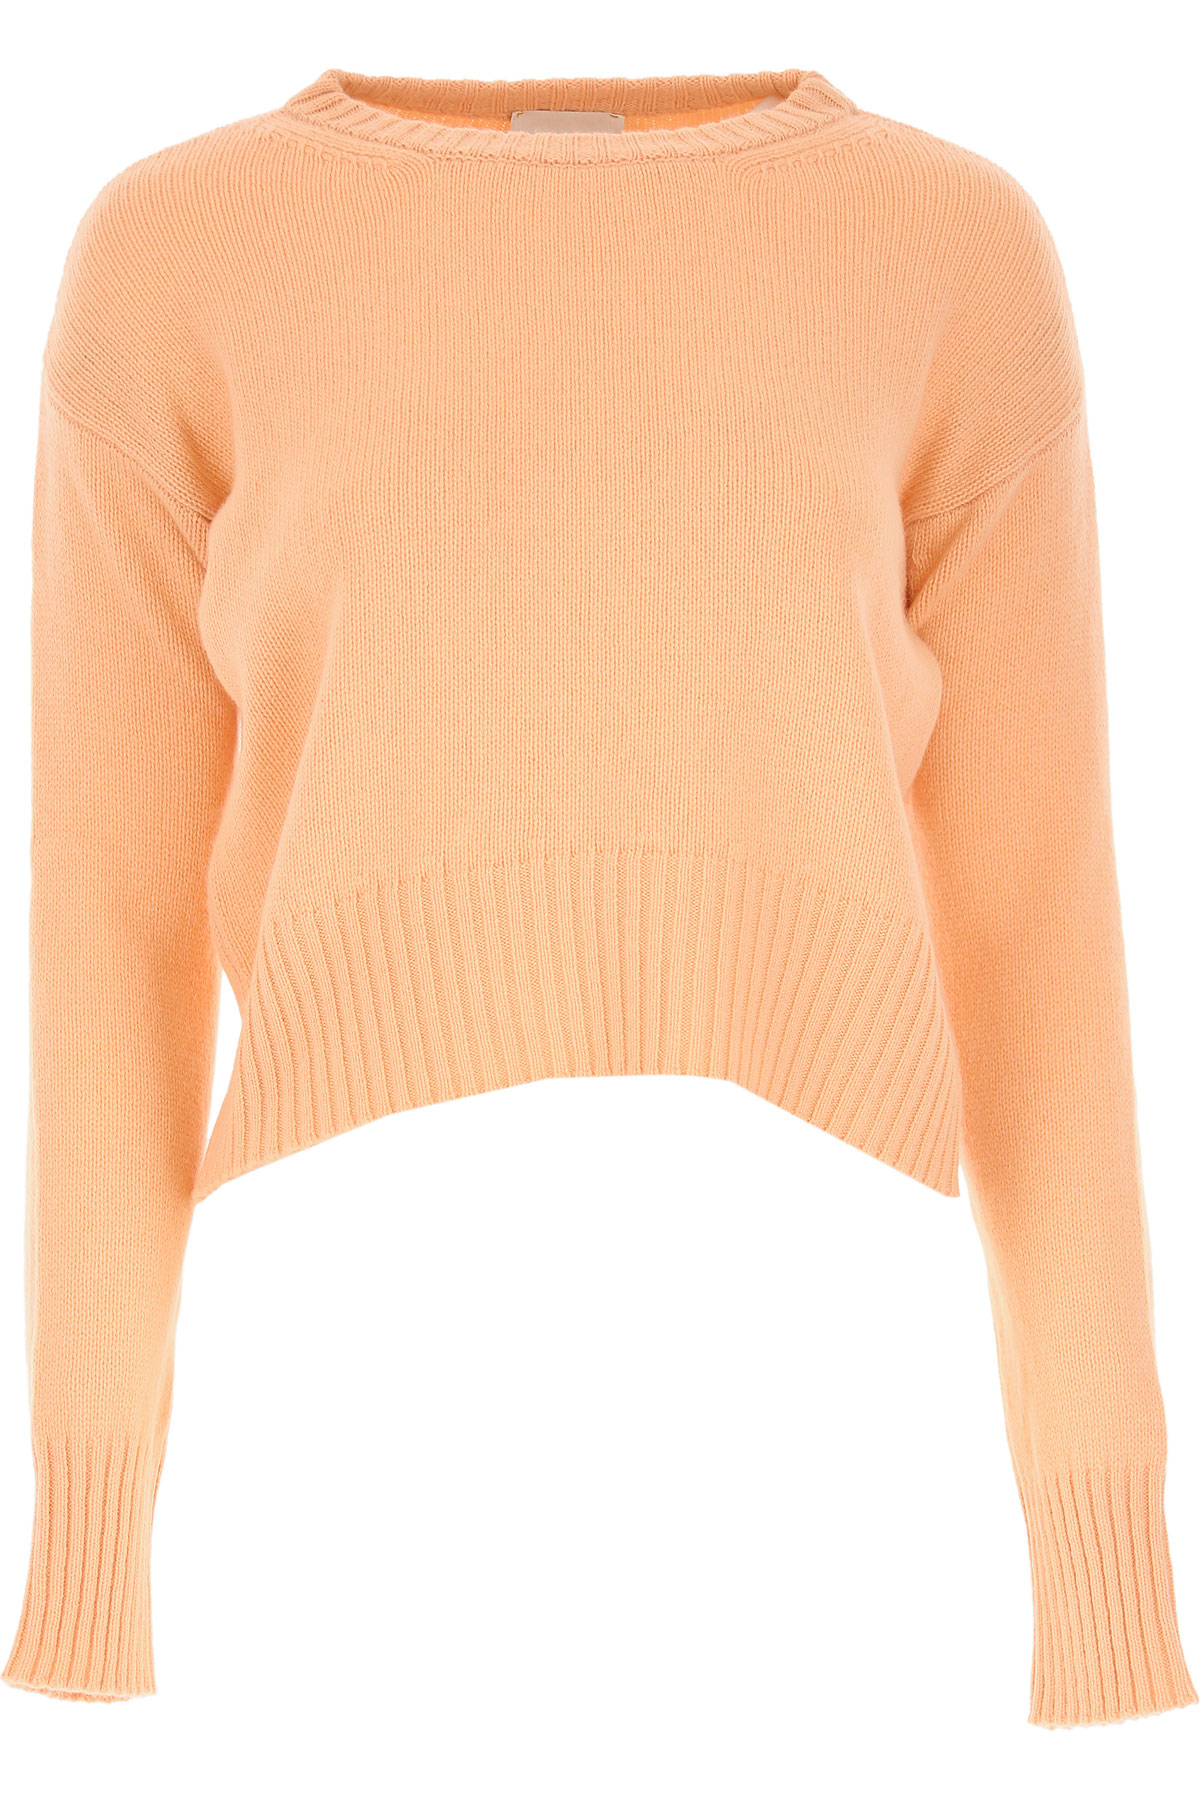 Forte Forte Sweater for Women Jumper, blush, Cashmere, 2019, 0 - XS - IT 38 1 - S - IT 40